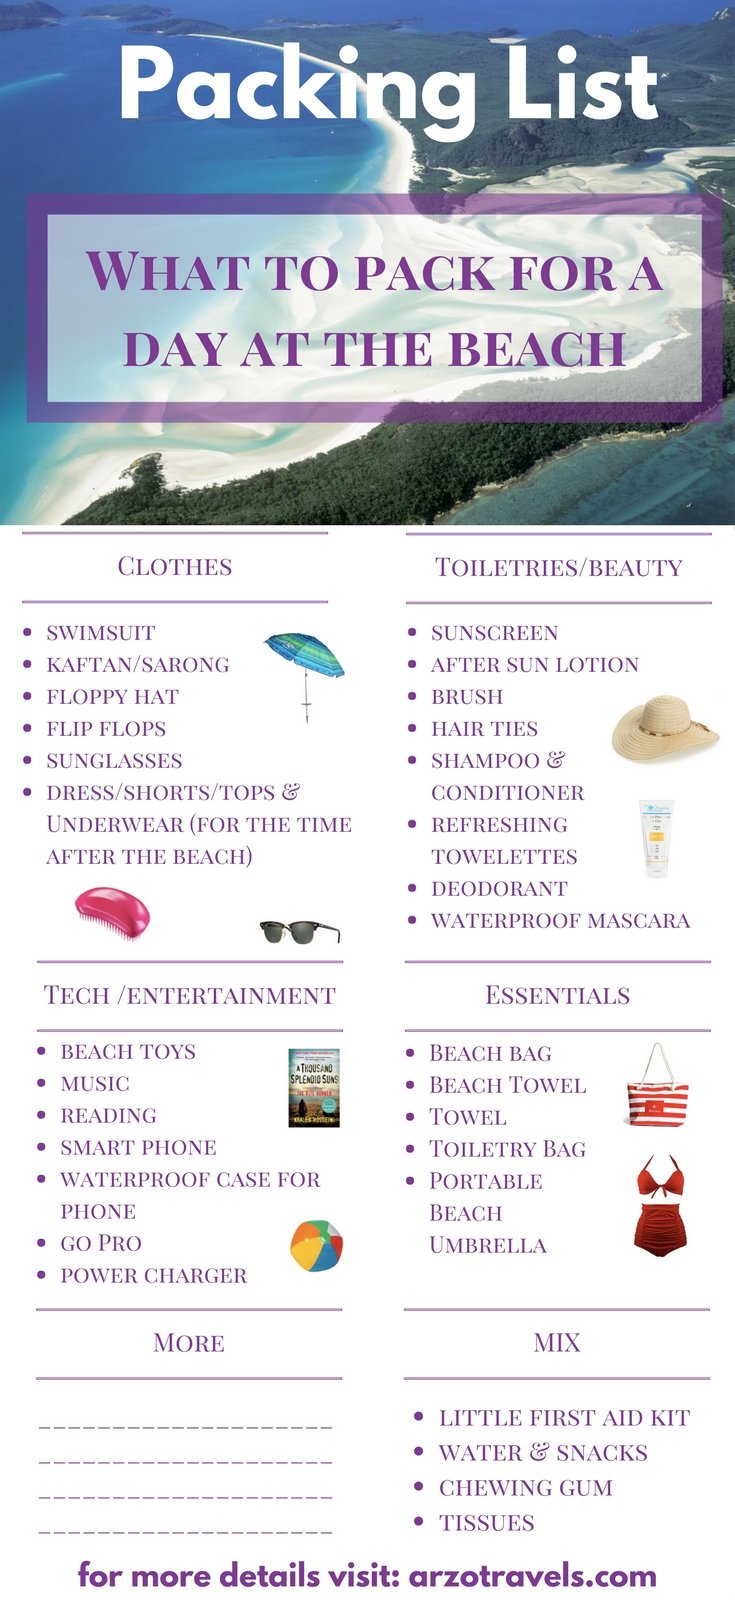 What to pack for a day at the beach. Travel tips for a perfect day at the beach.